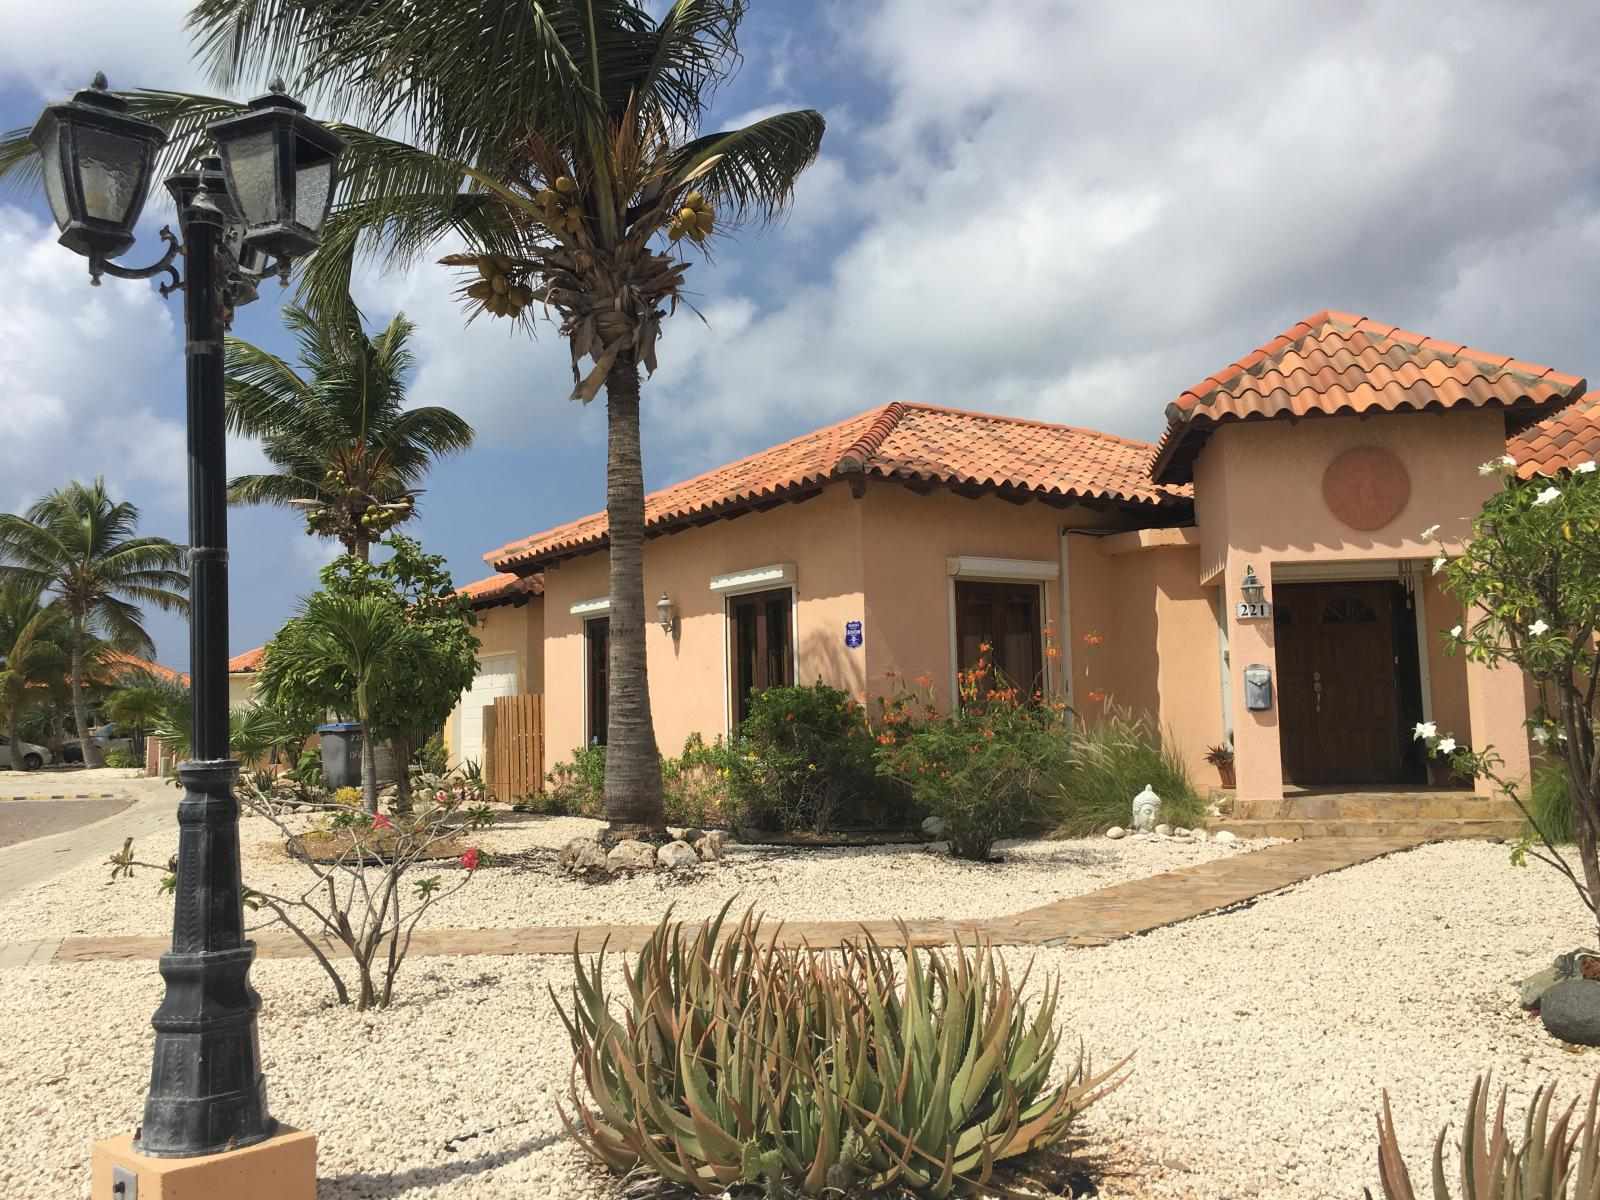 How To Find The Best Aruba Houses For Sale Aruba Real Estate